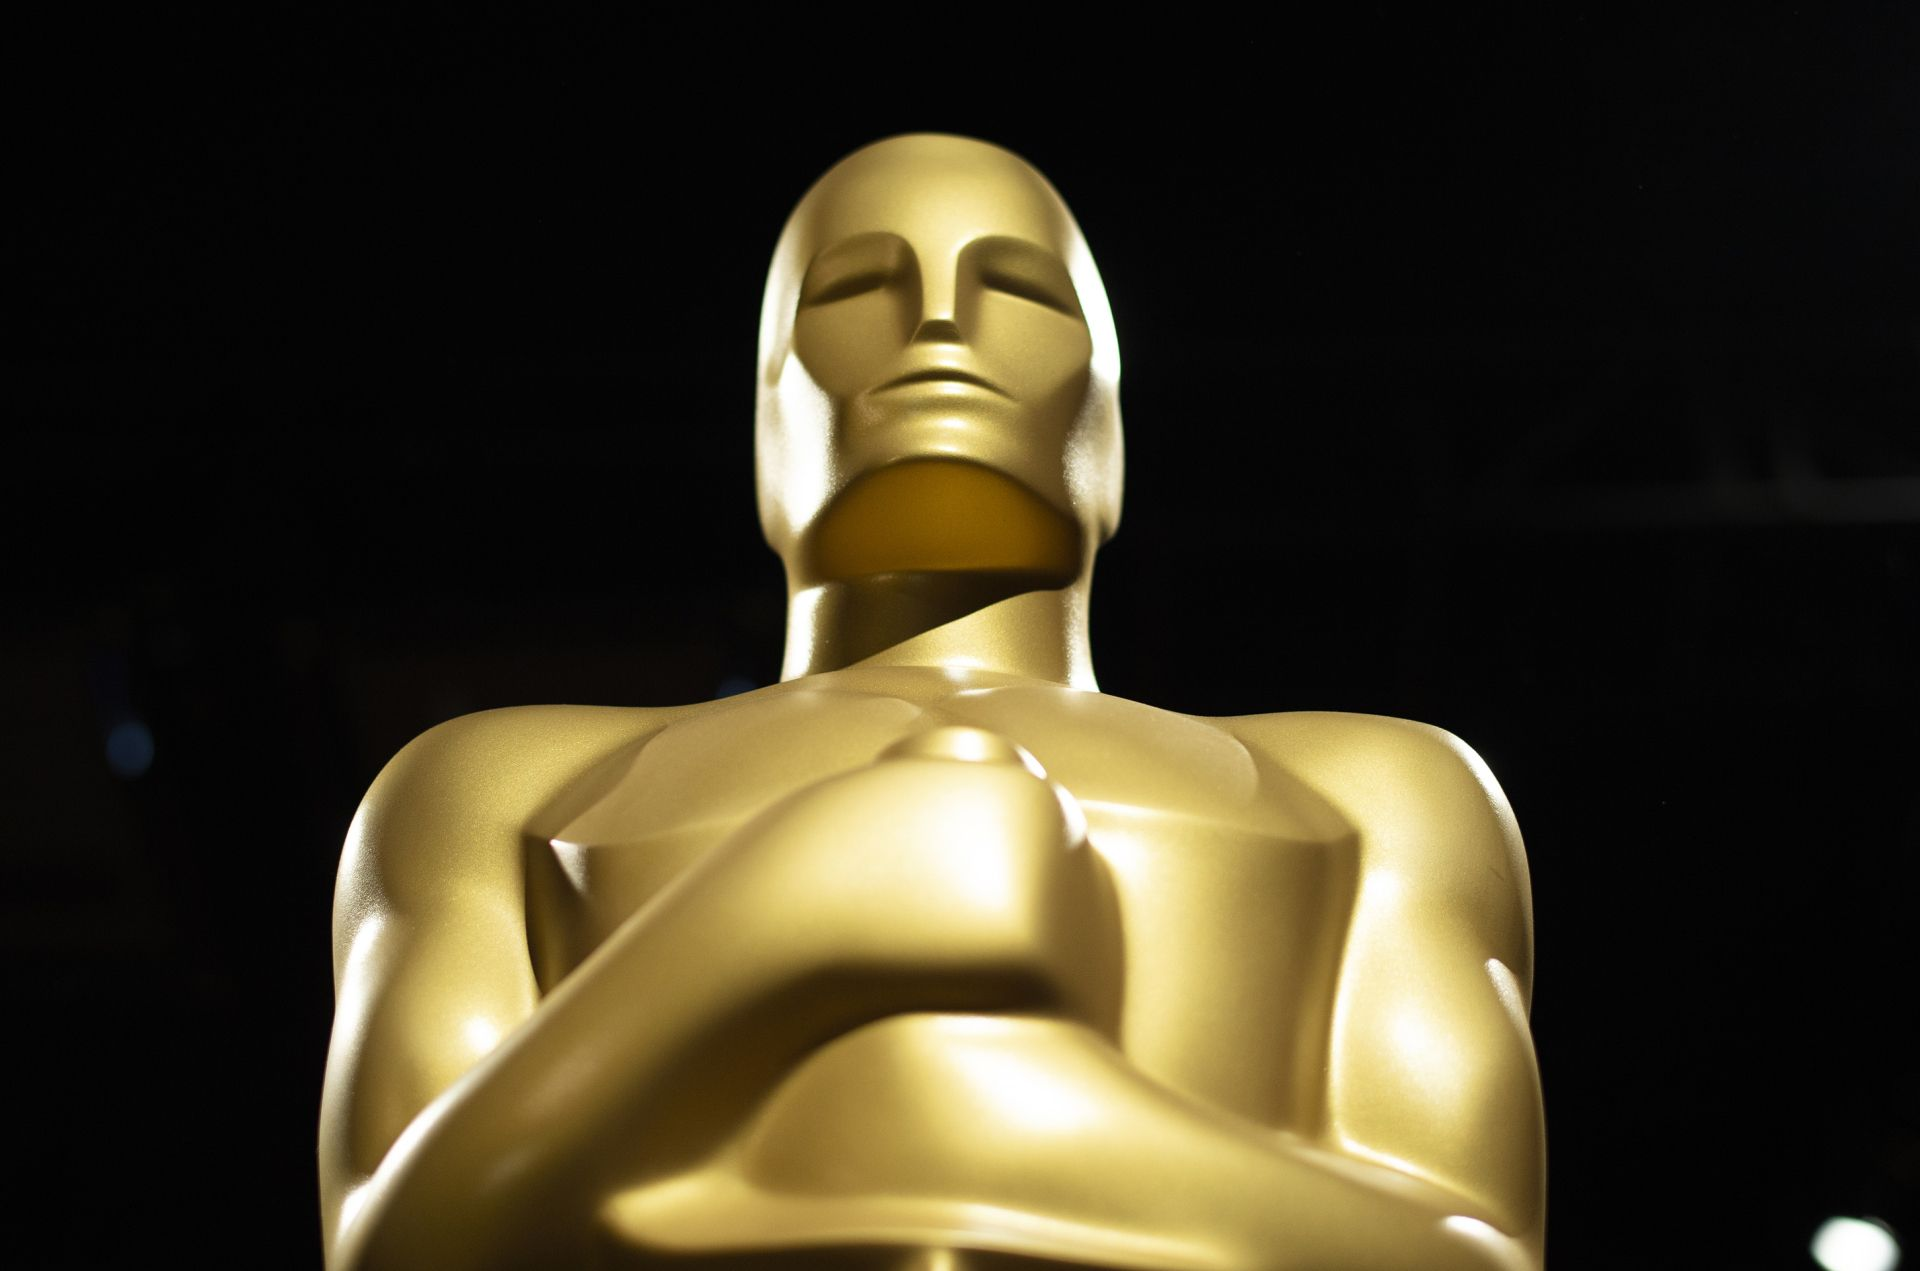 (FILES) In this file photo taken on February 15, 2019 an Oscar statue stands during a preview for the Governors Ball during the 91st annual Academy Awards week in Hollywood, on California,. - Millions of television viewers around the globe will tune in on February 24, 2019 to watch the Oscars, the glitziest night in showbiz, but most don't know how the winners are chosen. (Photo by VALERIE MACON / AFP)